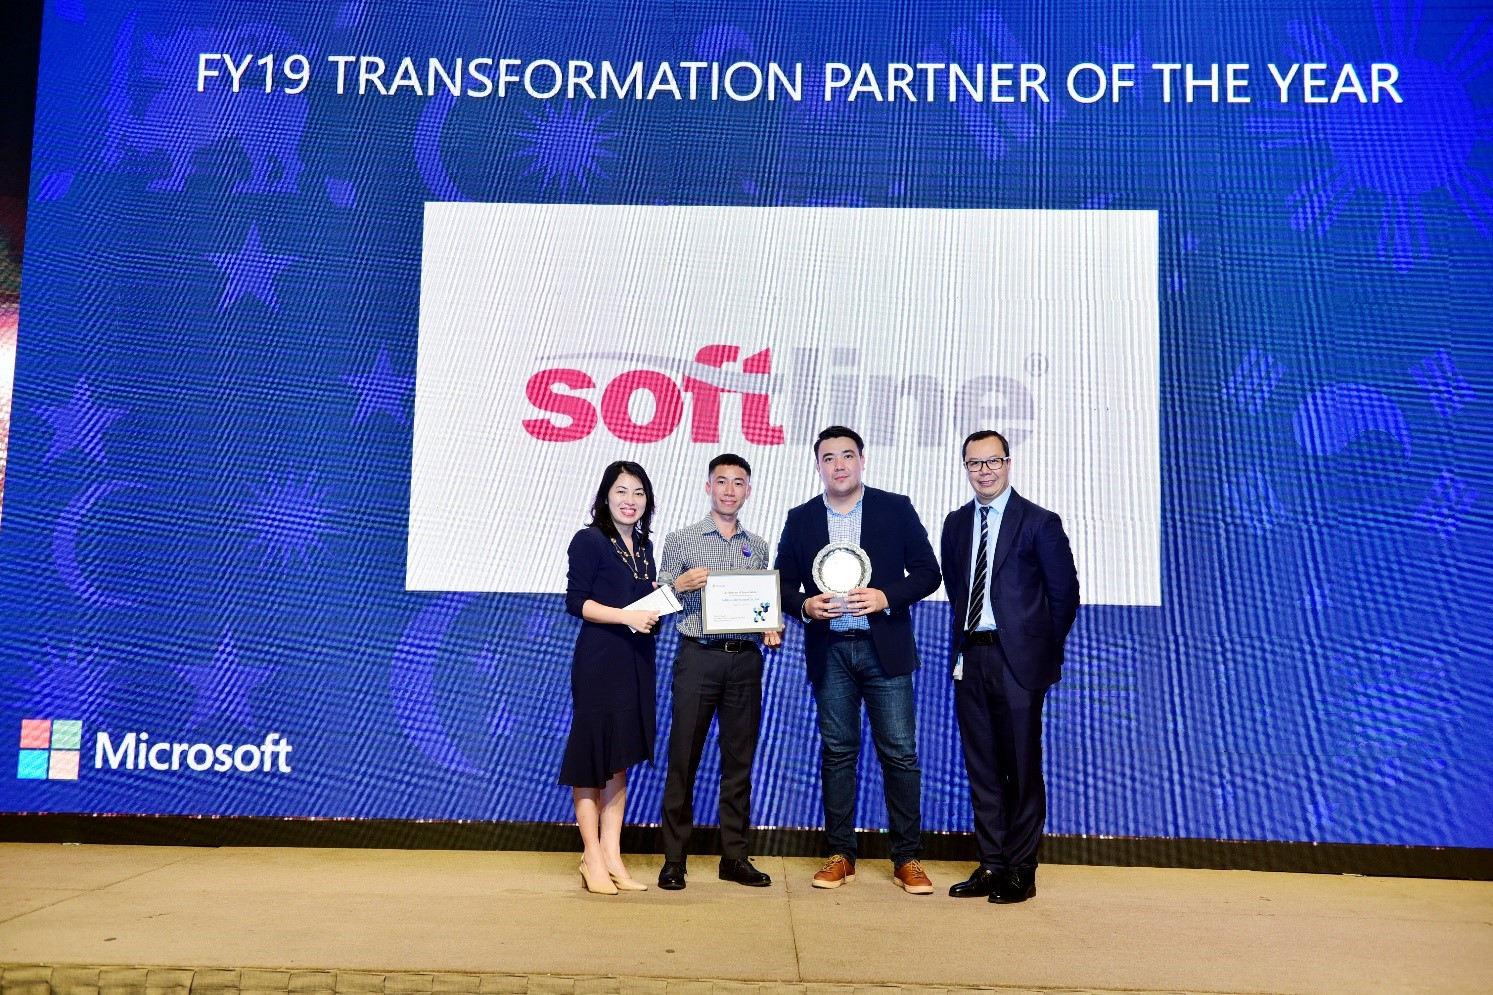 FY19 Transformation Partner of the Year